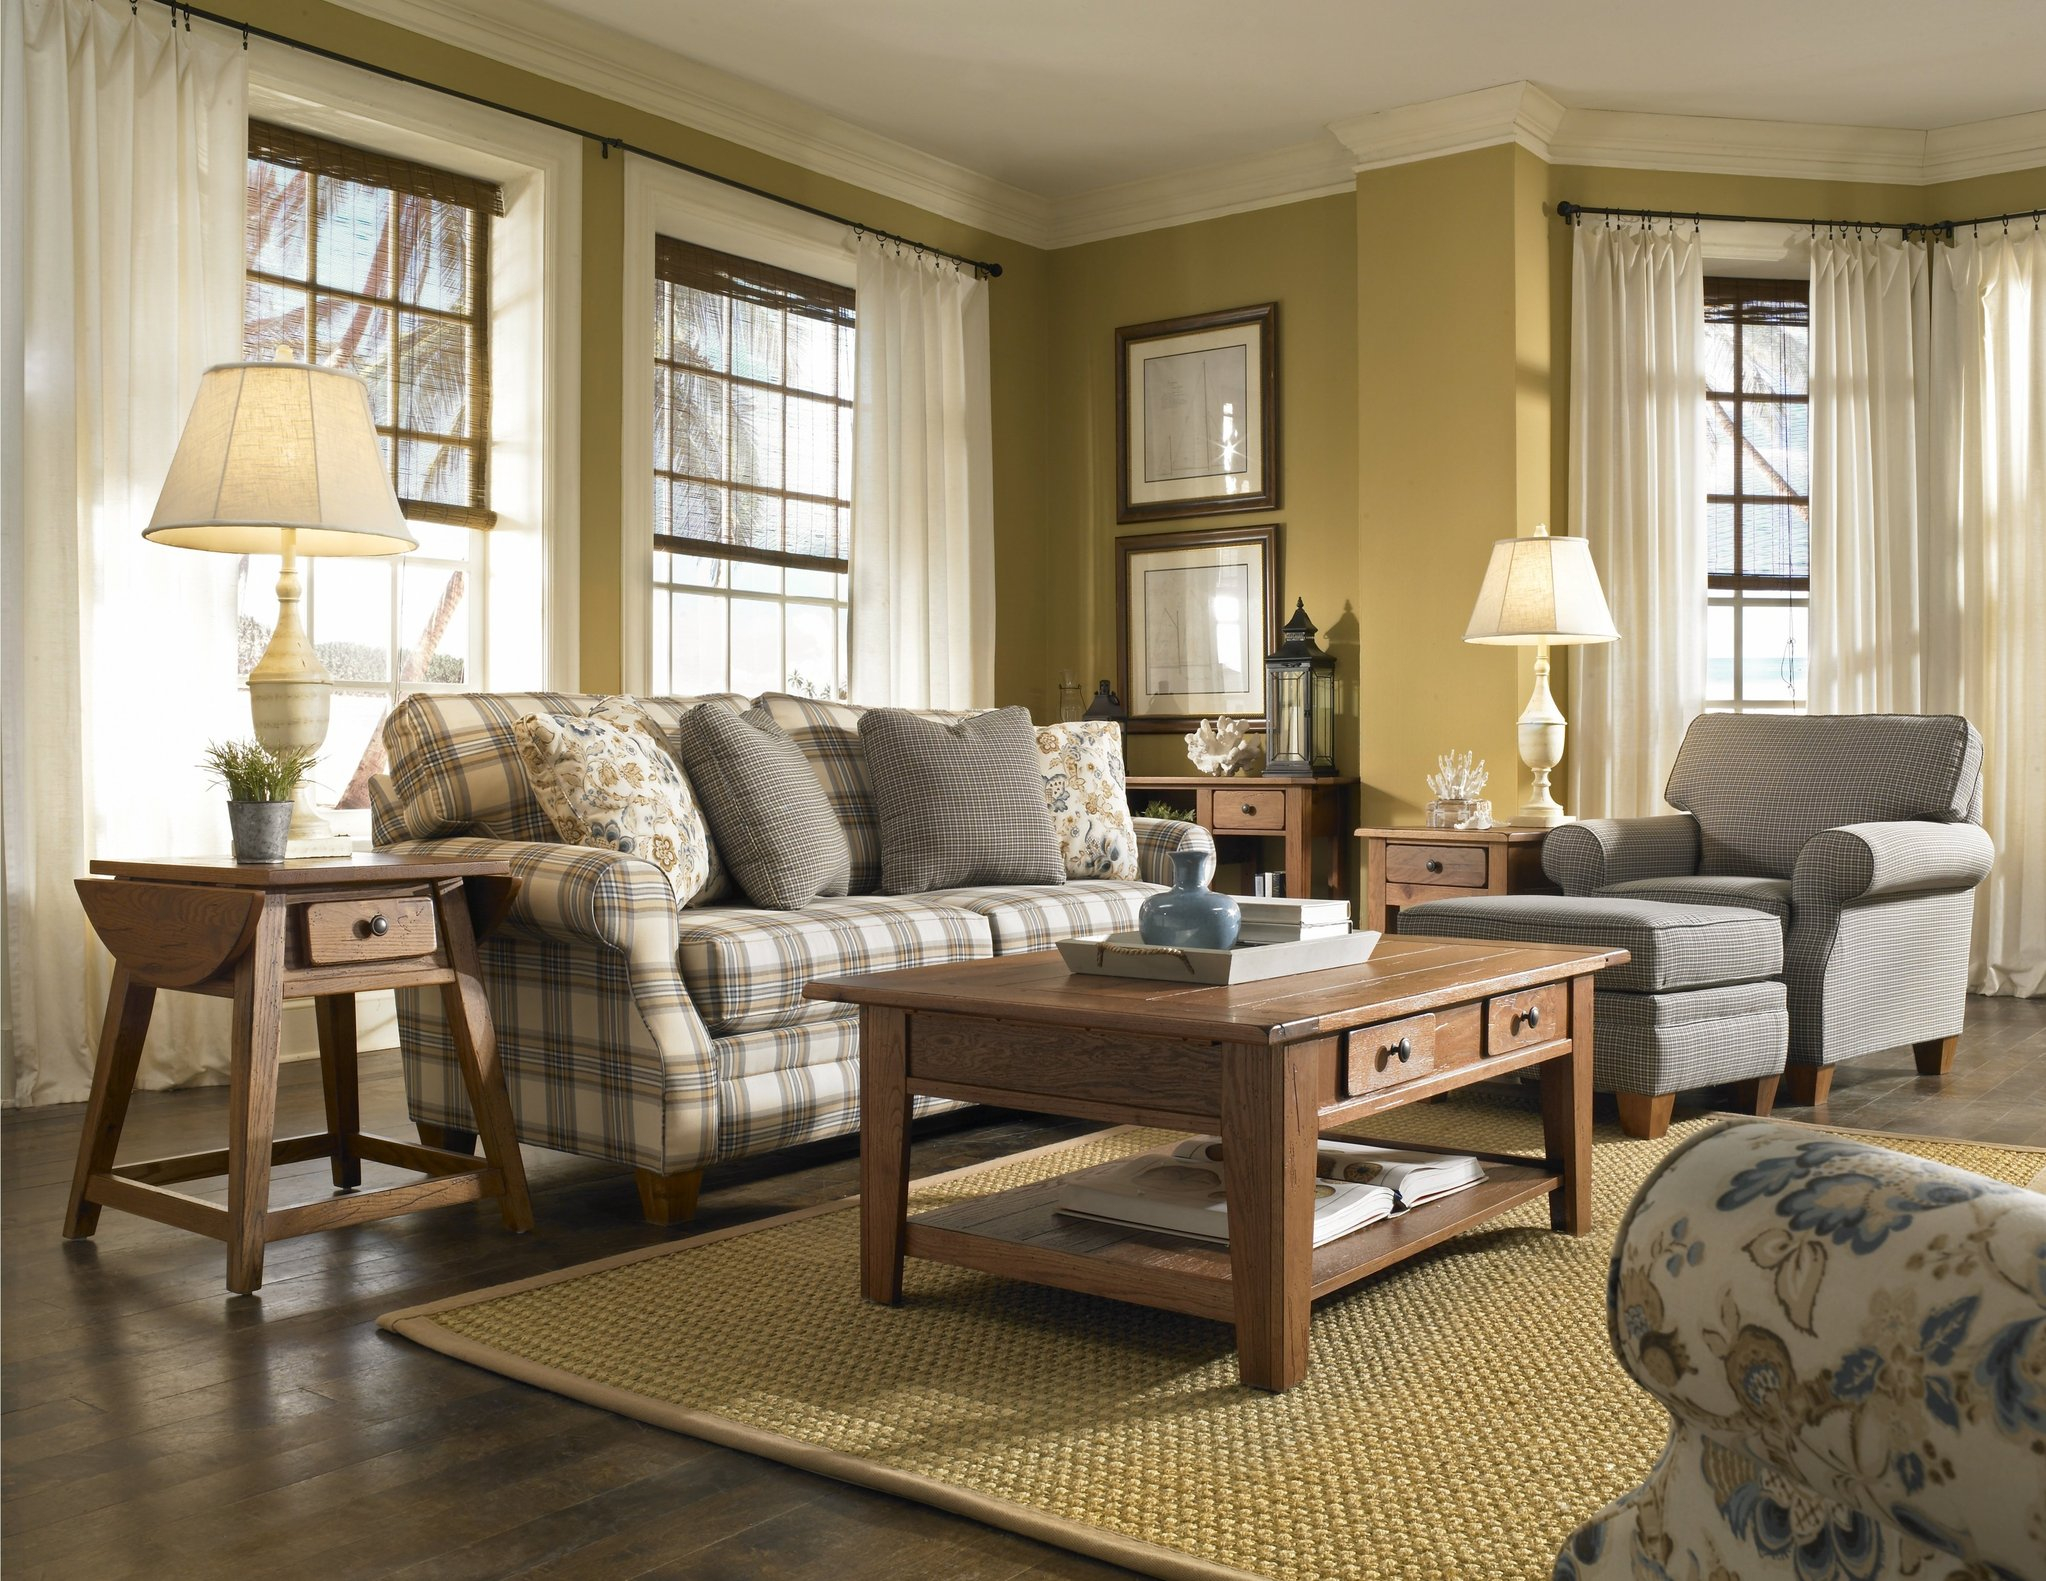 Country Living Room Furniture Keysintmartin within French Country Living Room Sets